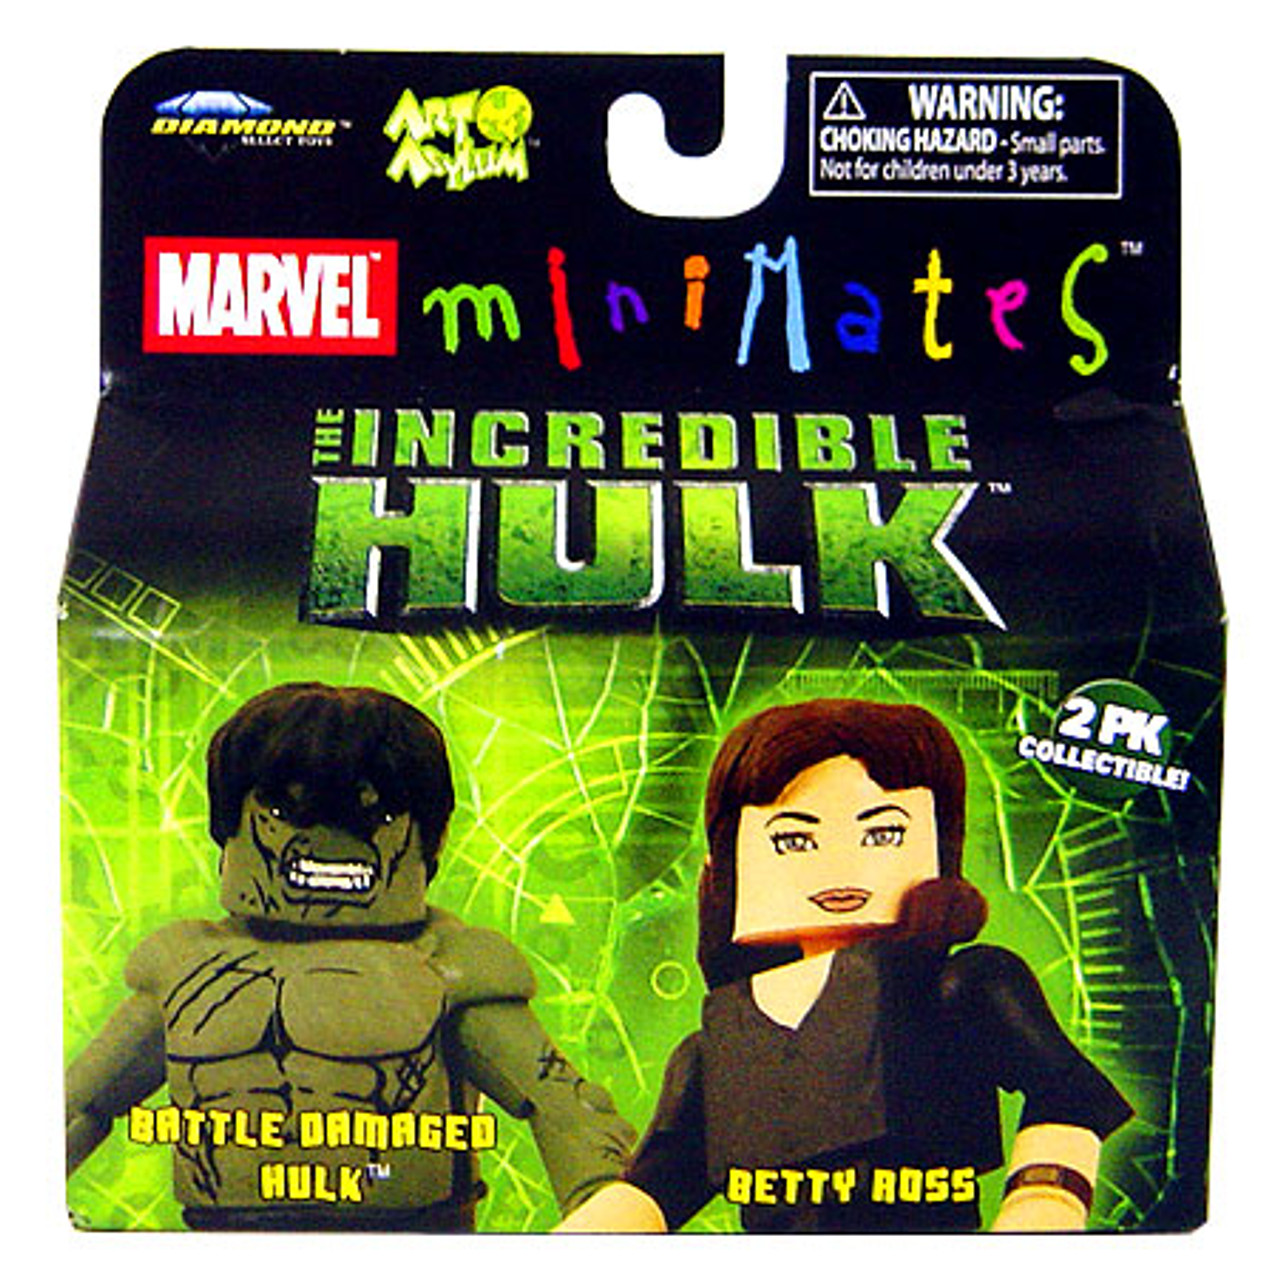 Marvel Minimates The Incredible Hulk Battle Damaged Hulk & Betty Ross Minifigure 2-Pack